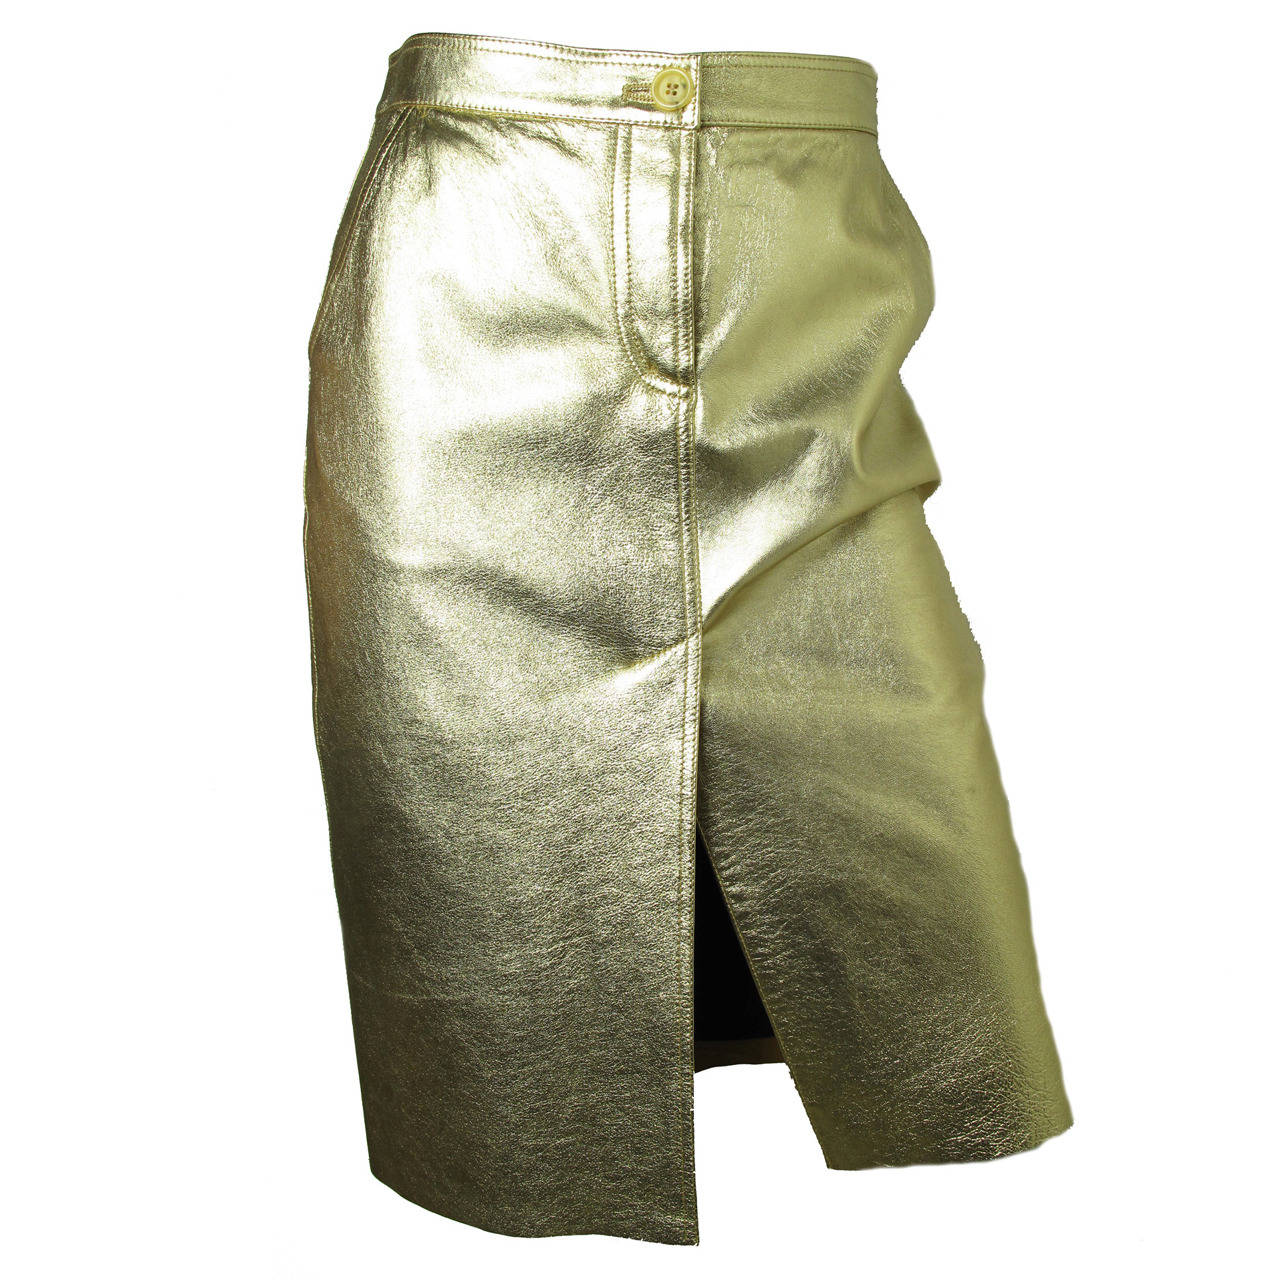 Moschino Gold Metallic Leather Skirt For Sale